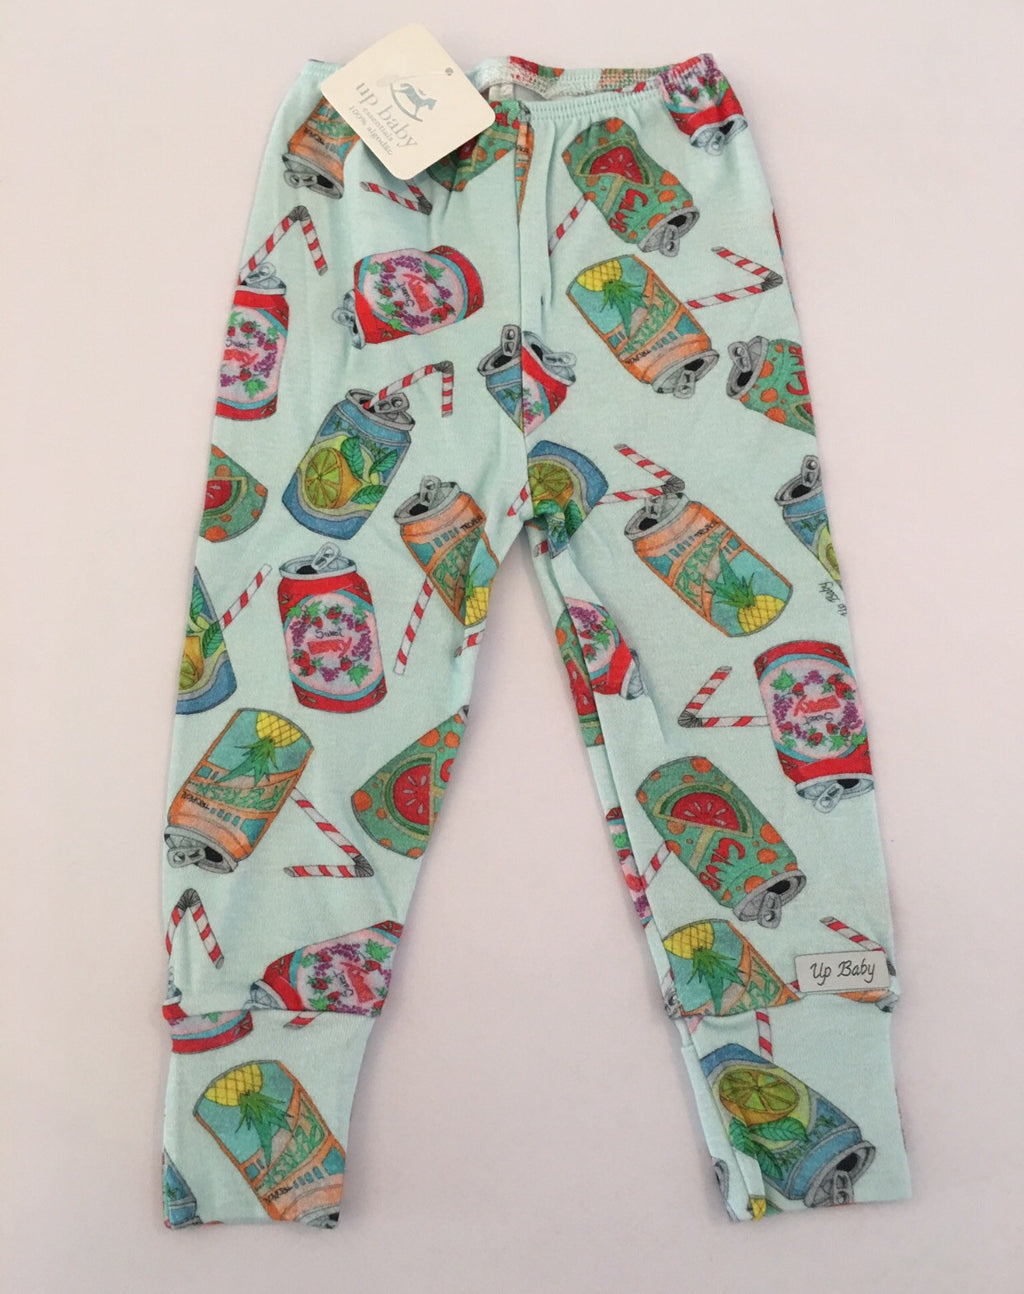 UP Baby Soda Pop Print Pants SALE